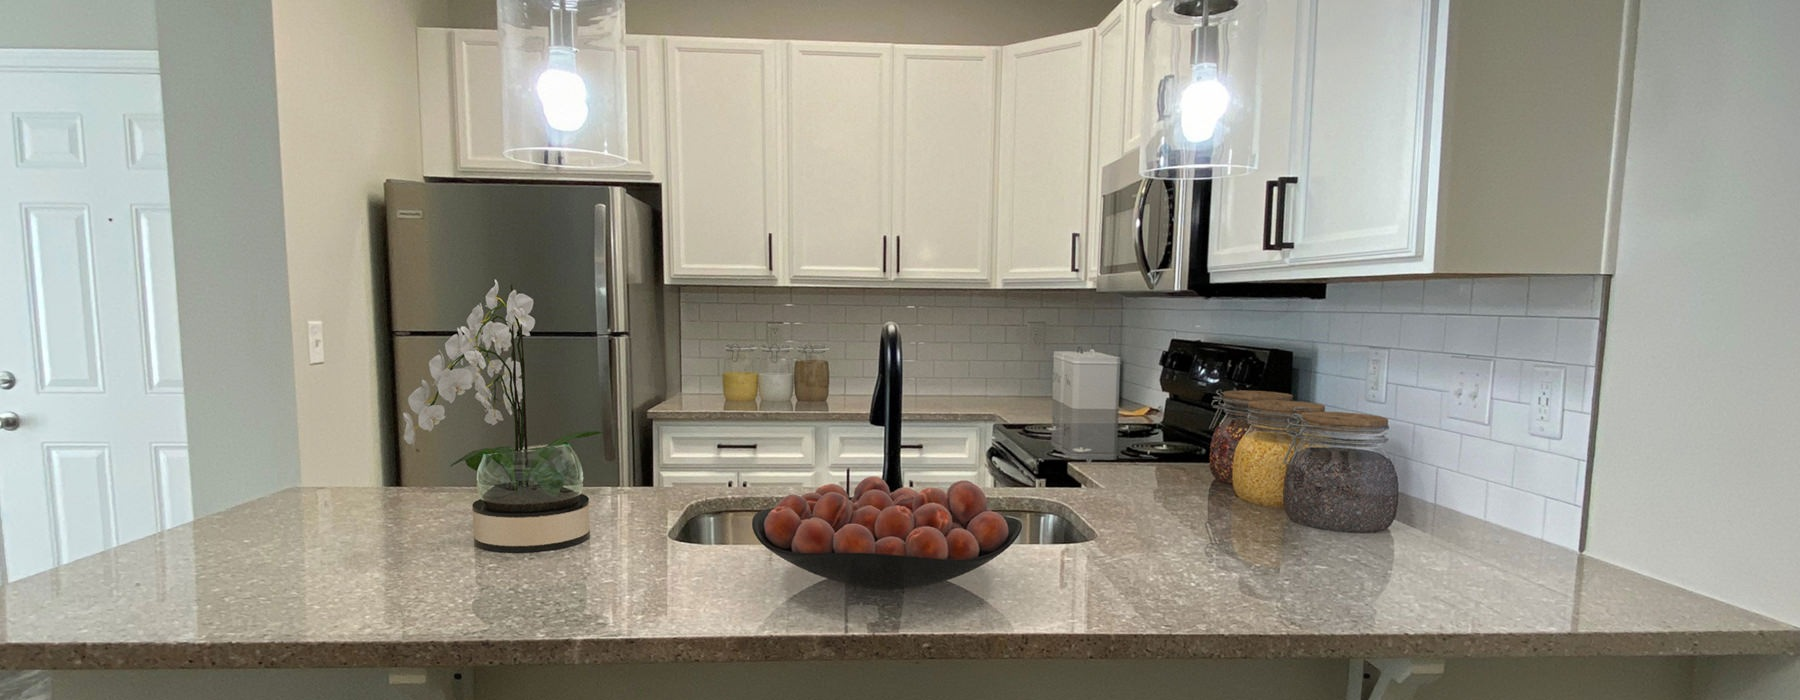 Modern Well Lit Apartment Kitchen At The Pointe At Heritage Apartments